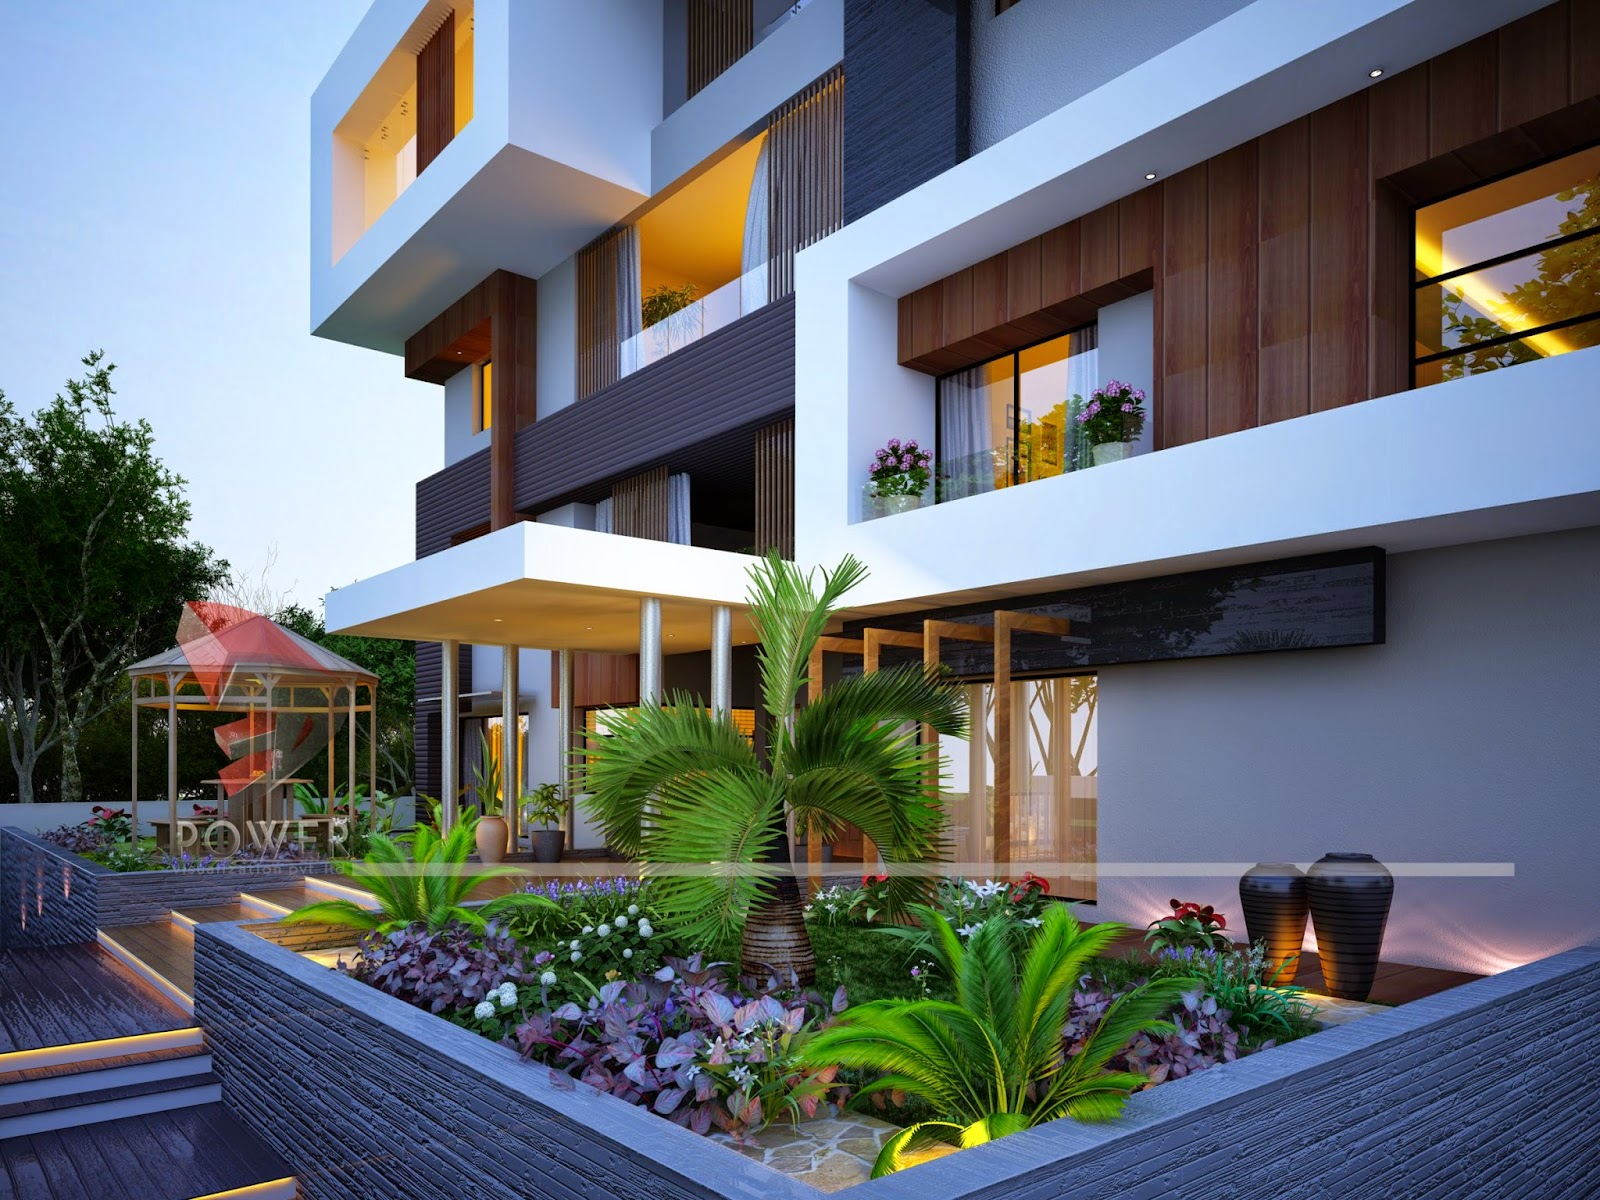 modernhomedesign House 3D Interior Exterior Design Rendering